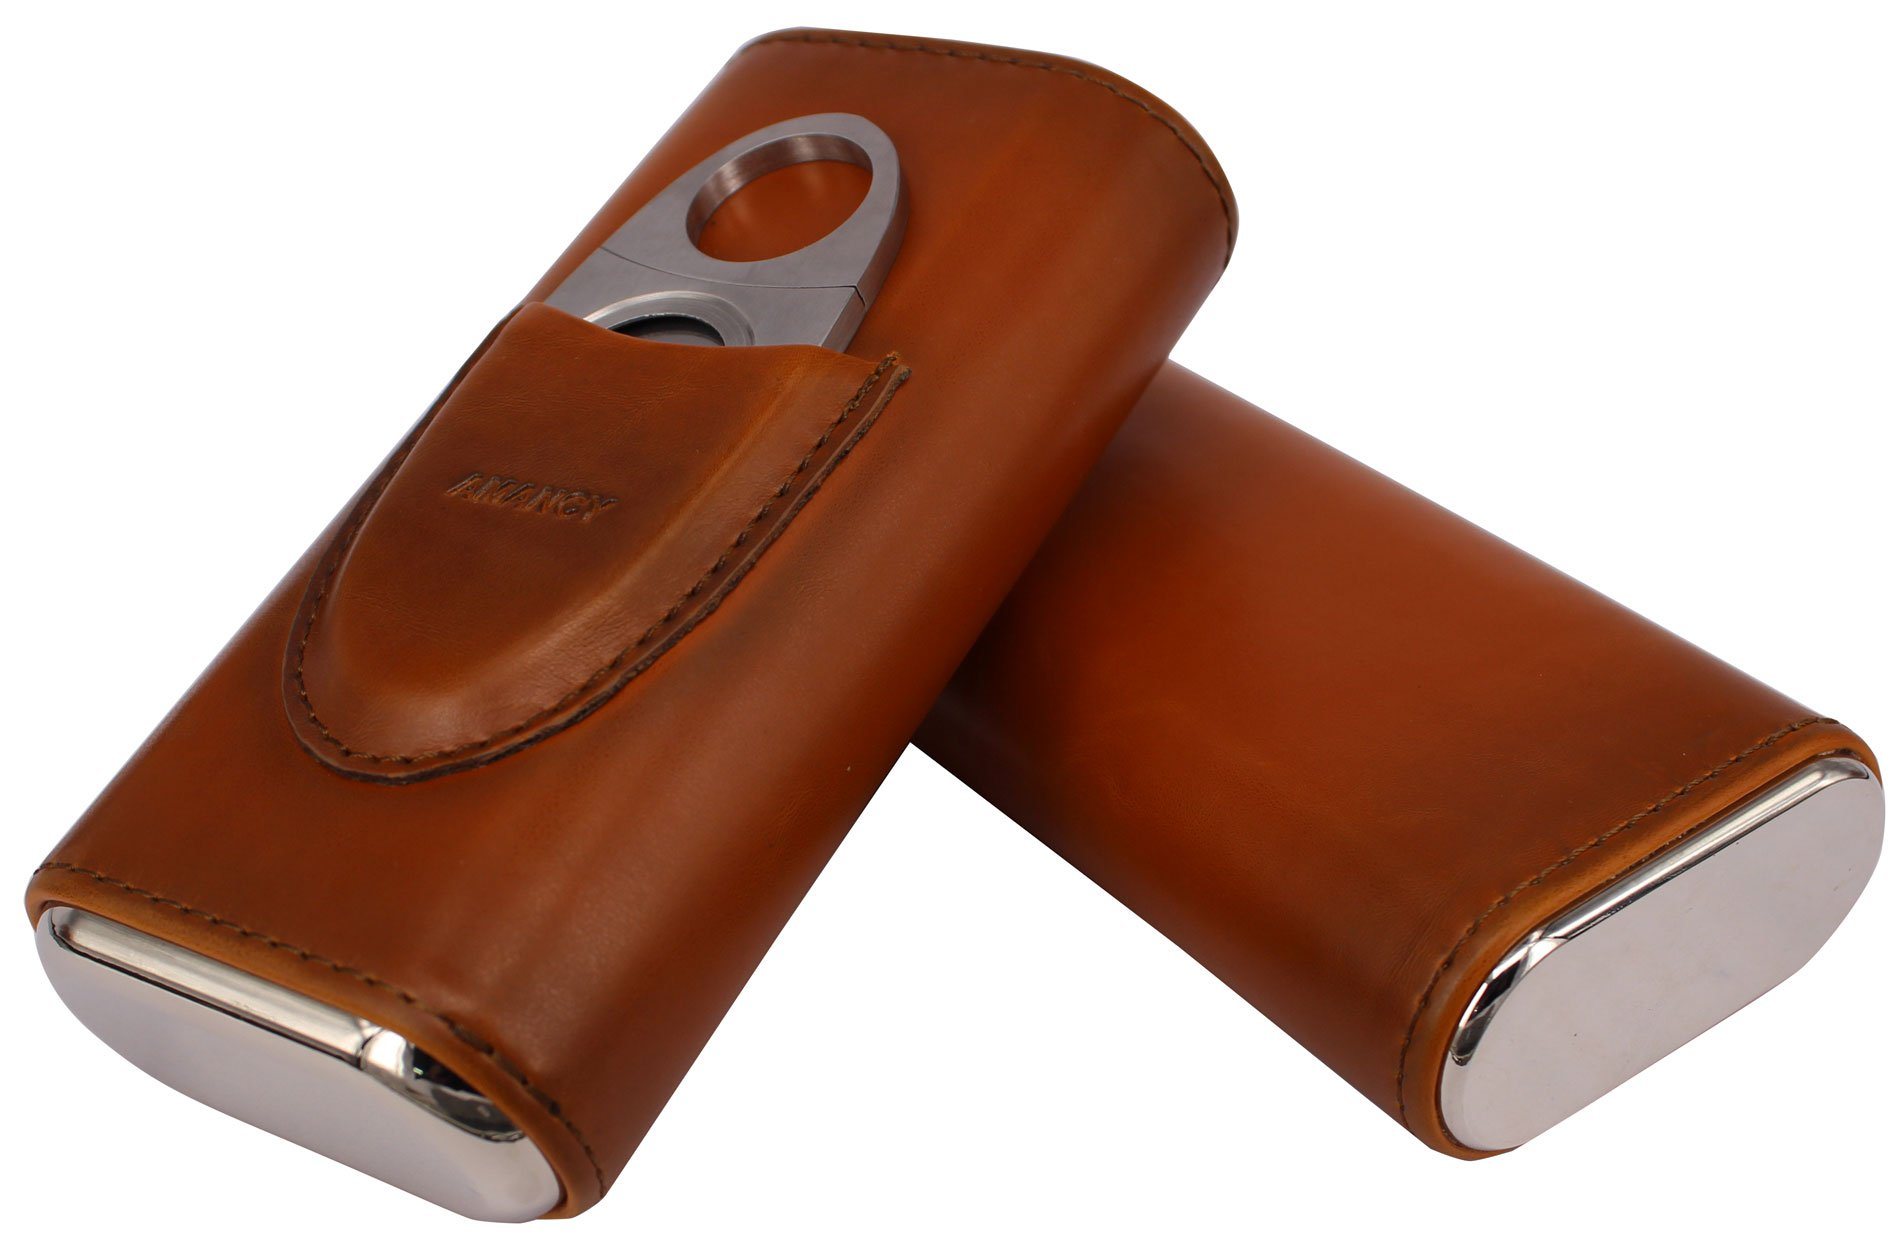 AMANCY Top Quality 3- Finger Brown Leather Cigar Case, Cedar Wood Lined Cigar Humidor with Silver Stainless Steel Cutter by AMANCY (Image #4)